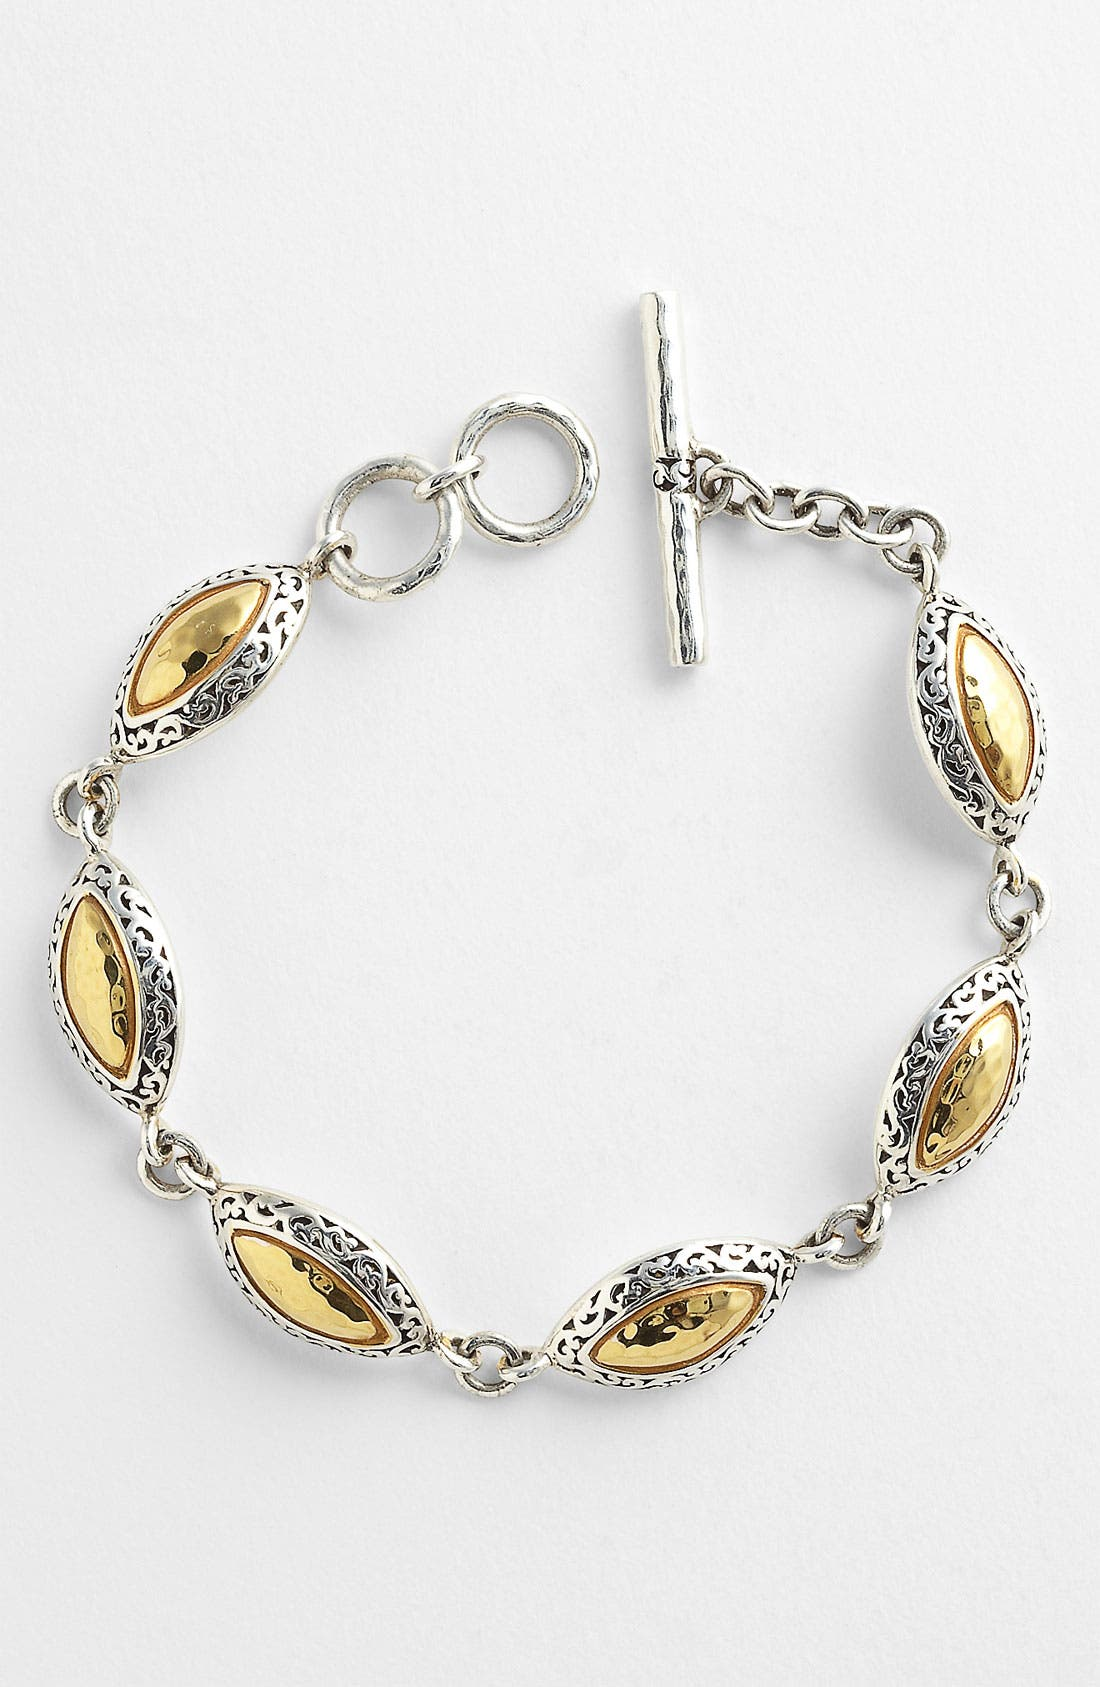 Main Image - Lois Hill 'Marquise' Station Bracelet